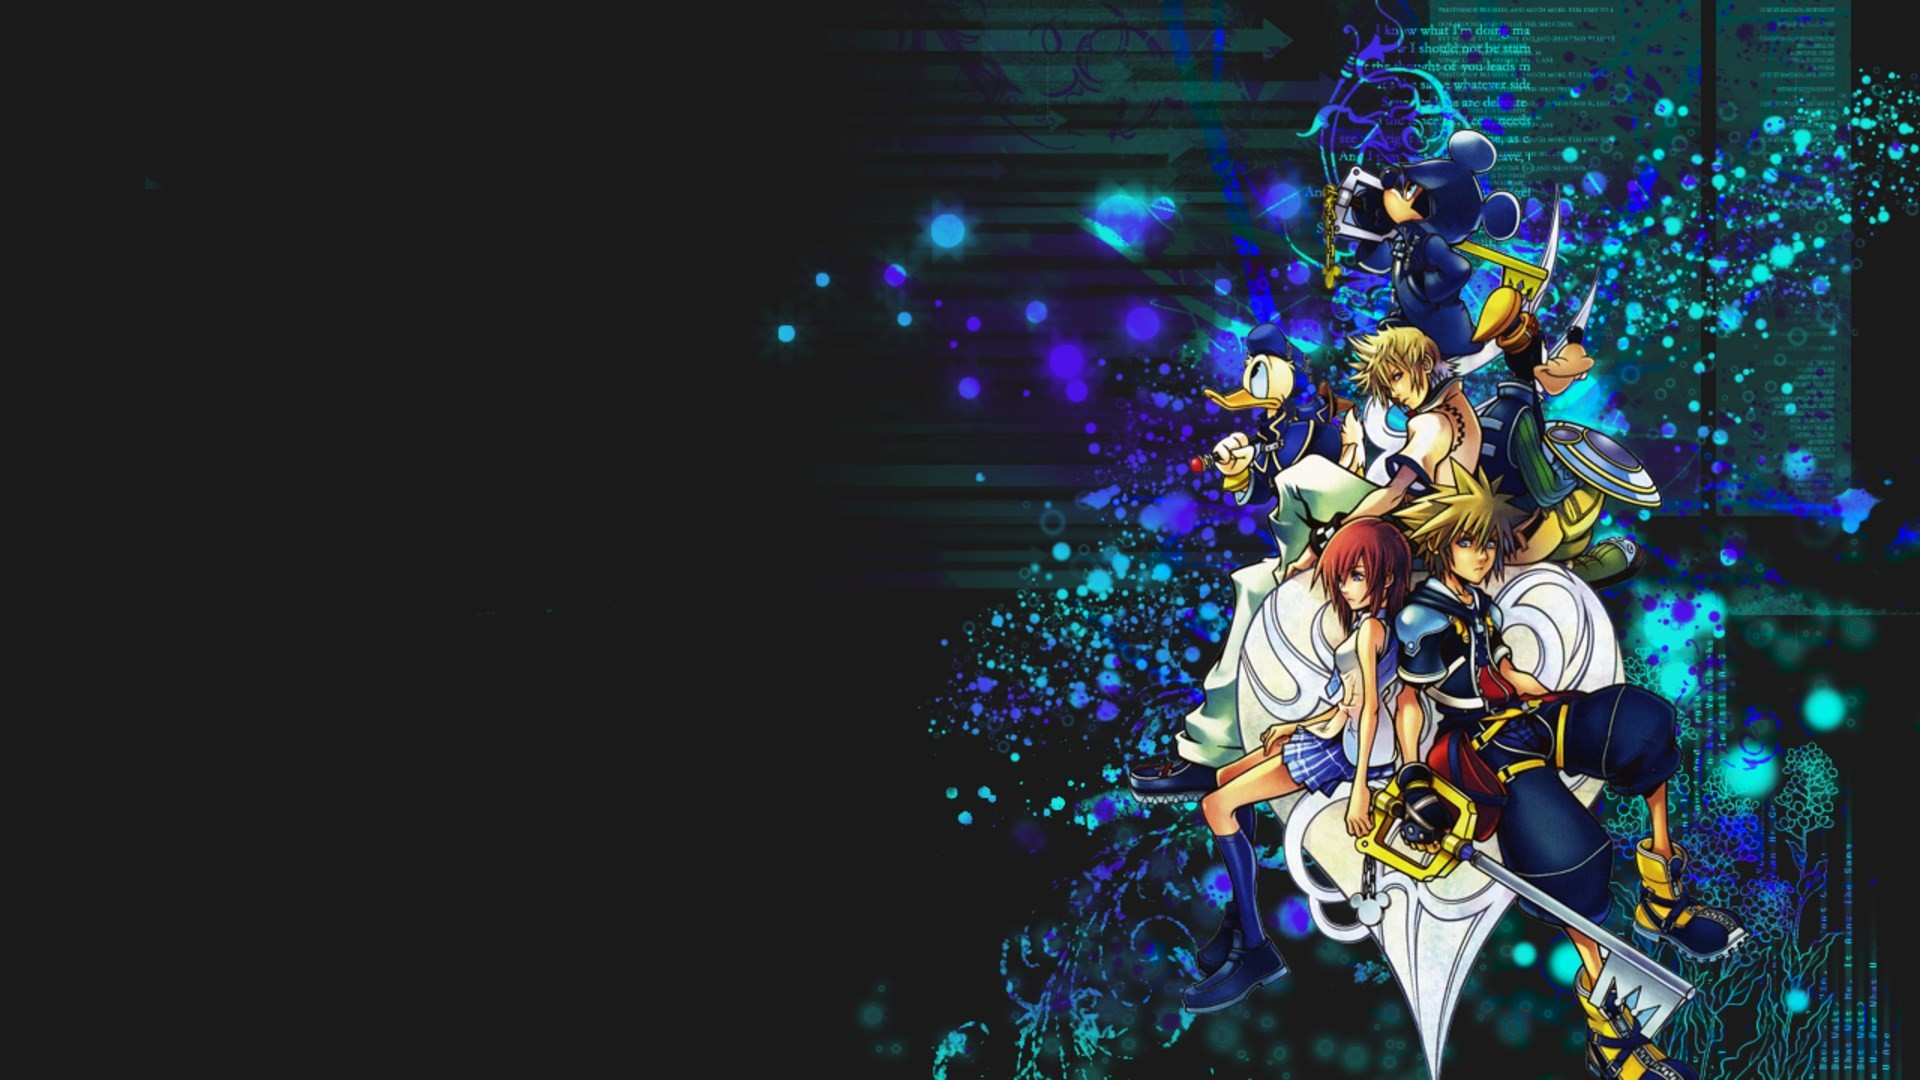 Hd Background Wallpaper 800x600: Kingdom Hearts Wallpaper 1920x1080 ·① Download Free